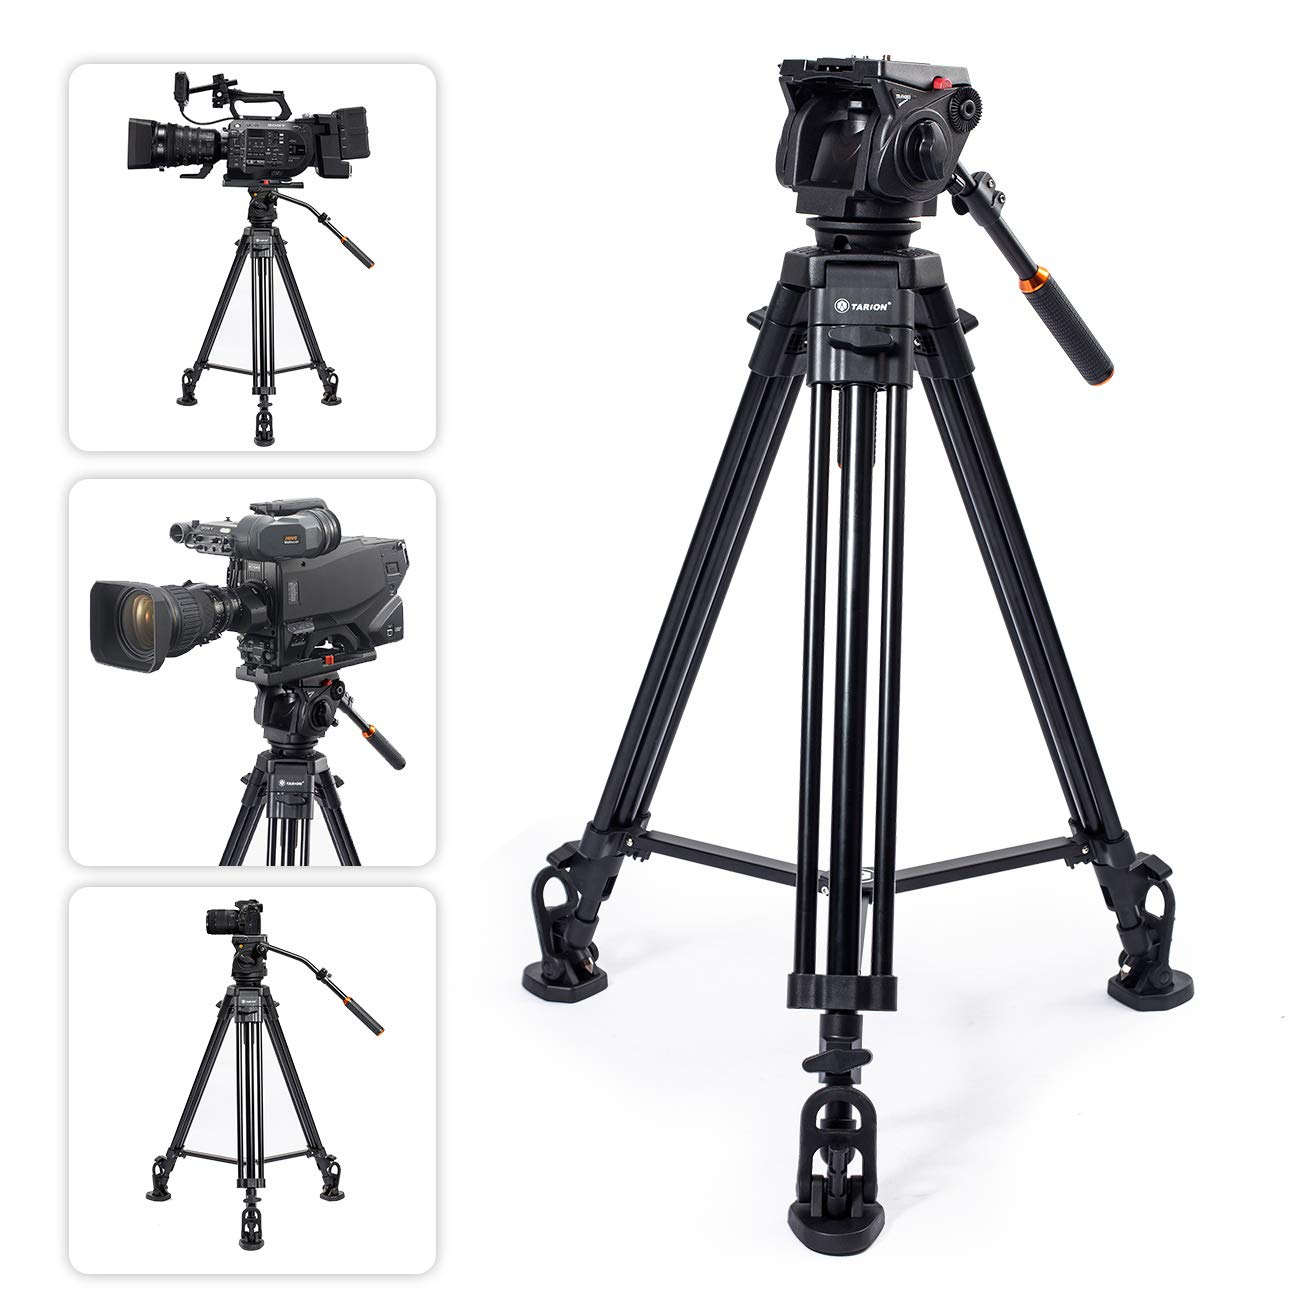 TARION TR-VT77 Camera Tripod TRP-FH353 Fluid Drag Head Full Panoramic View 360 1/4'' & 3/8'' Quick Release Plate DSLR Camcorder Photography Studio